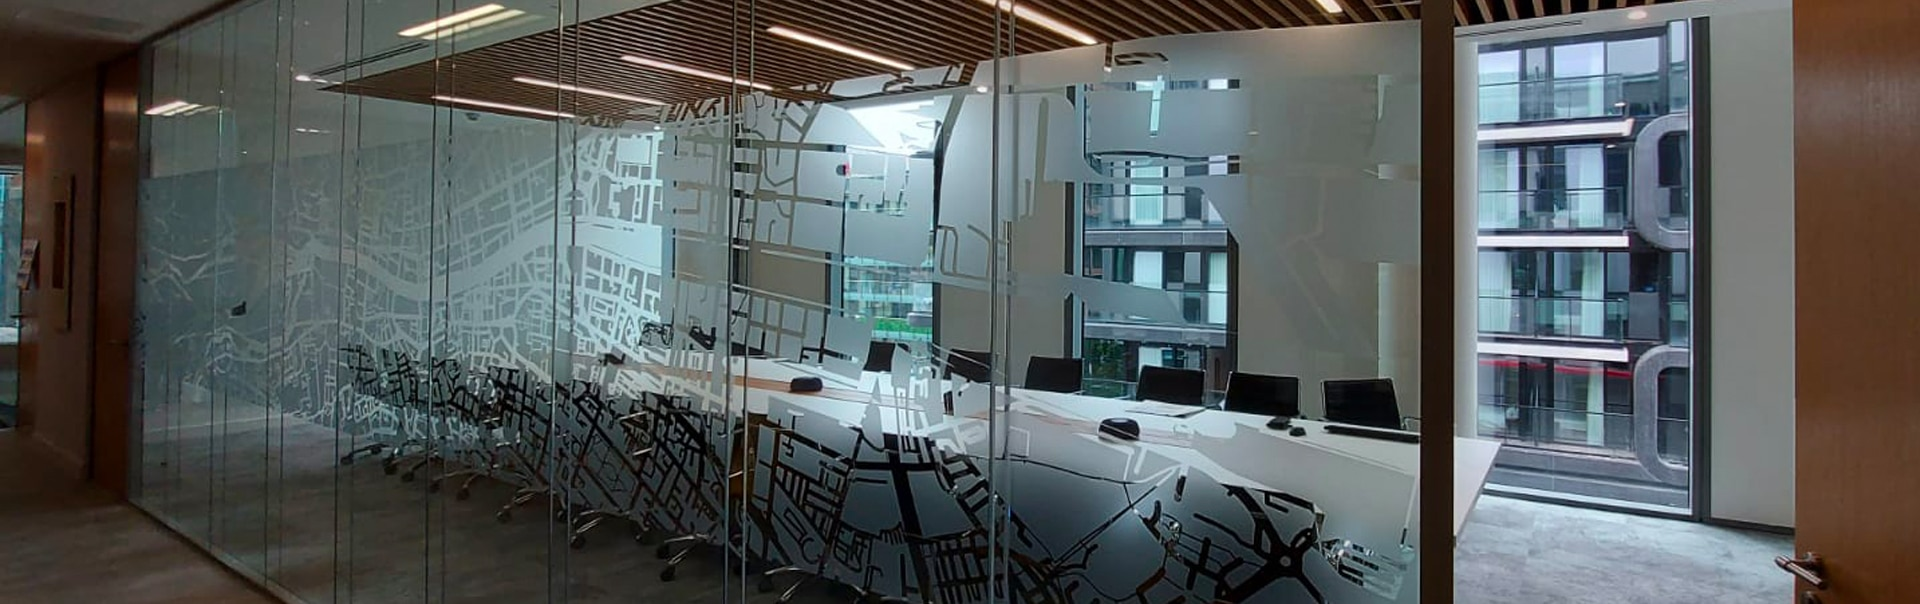 Screen windows in creative ways with Clear PET manifestations